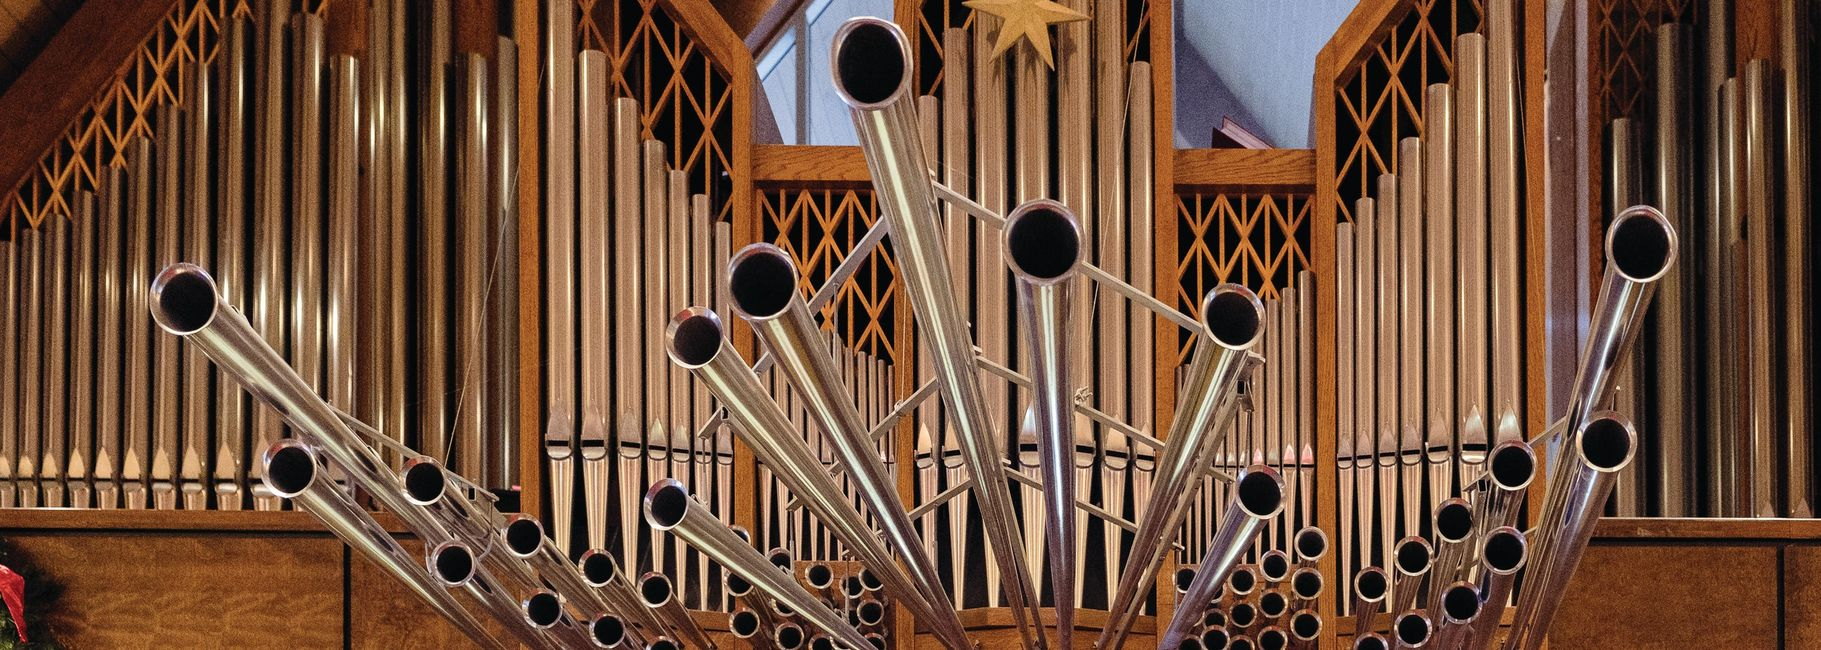 view of central organ pipes including the trumpets coming from the pipes.